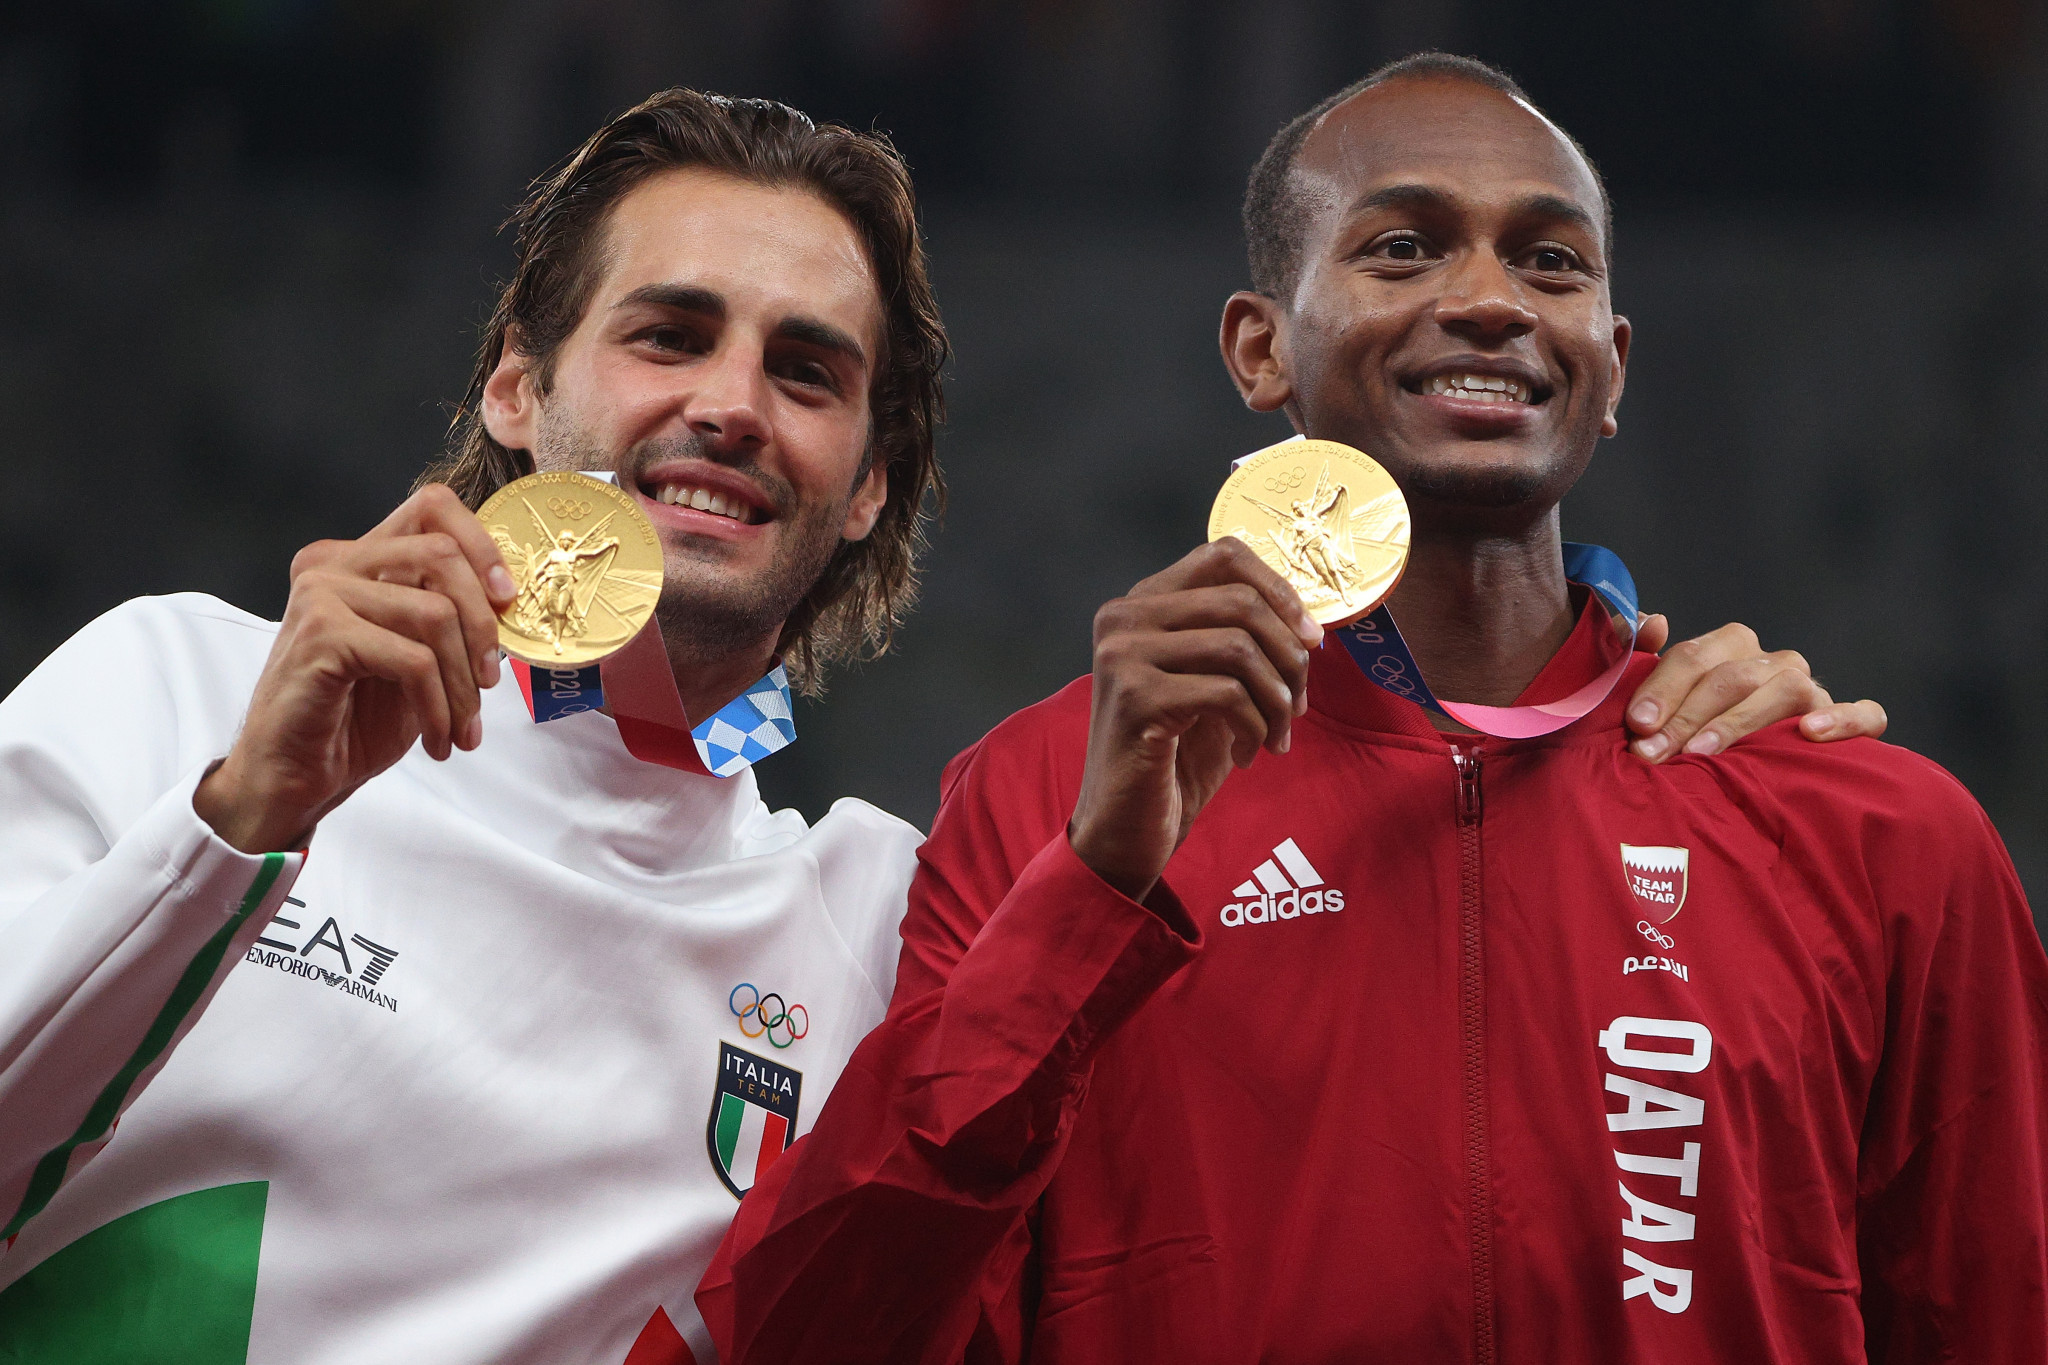 Mutaz Barshim, right, won a bronze medal at London 2012, silver at Rio 2016 and then gold at Tokyo 2020, while Gianmarco Tamberi won his first Olympic medal ©Getty Images